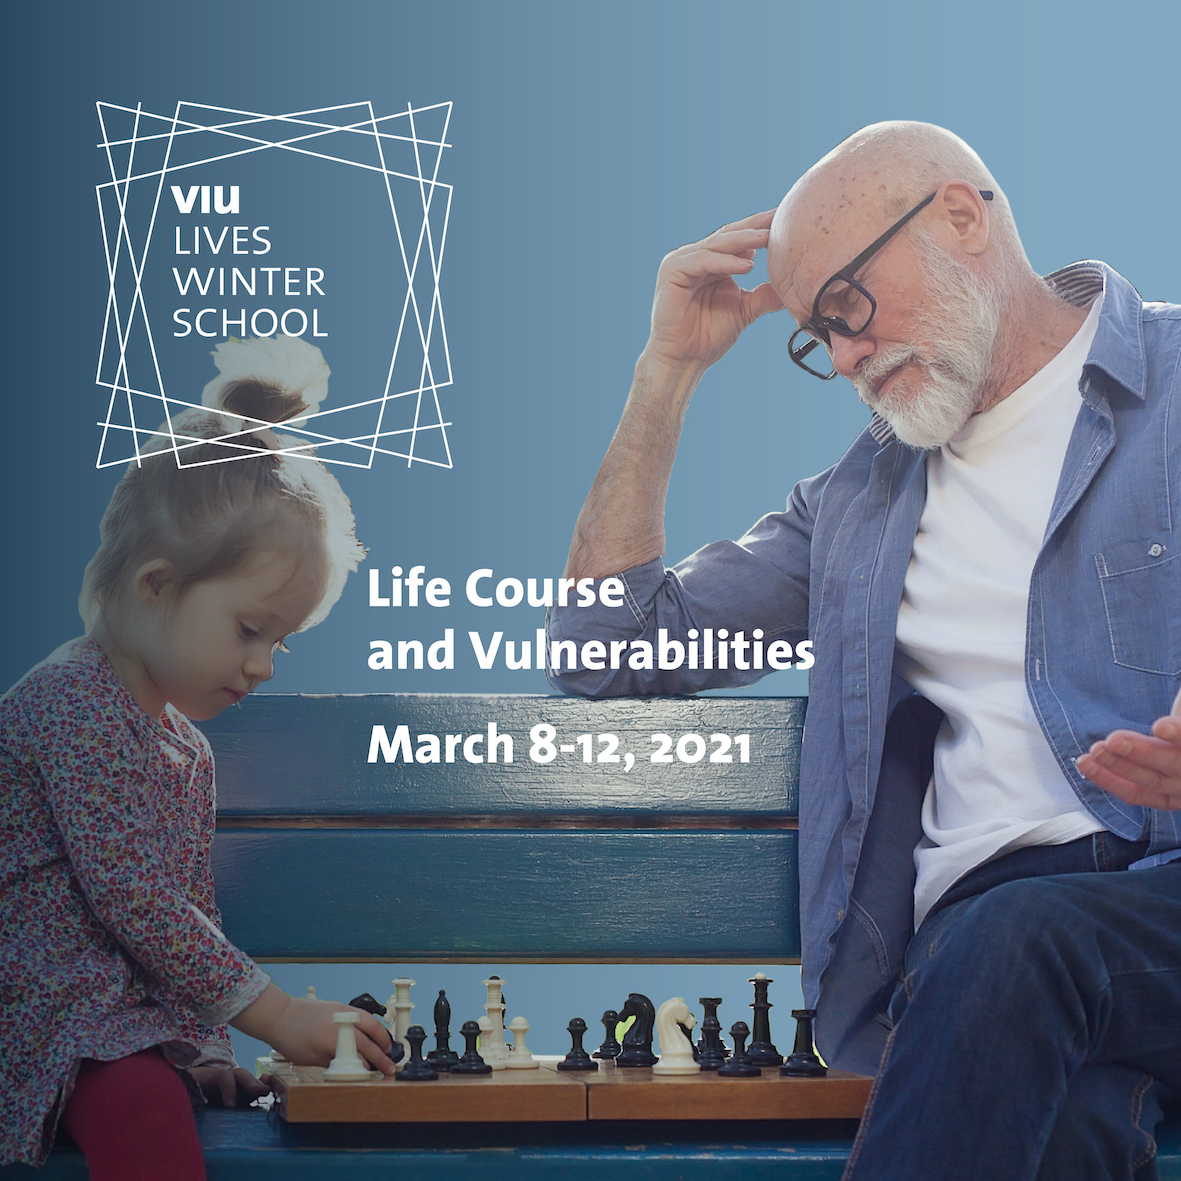 VIU / LIVES winter school 2021